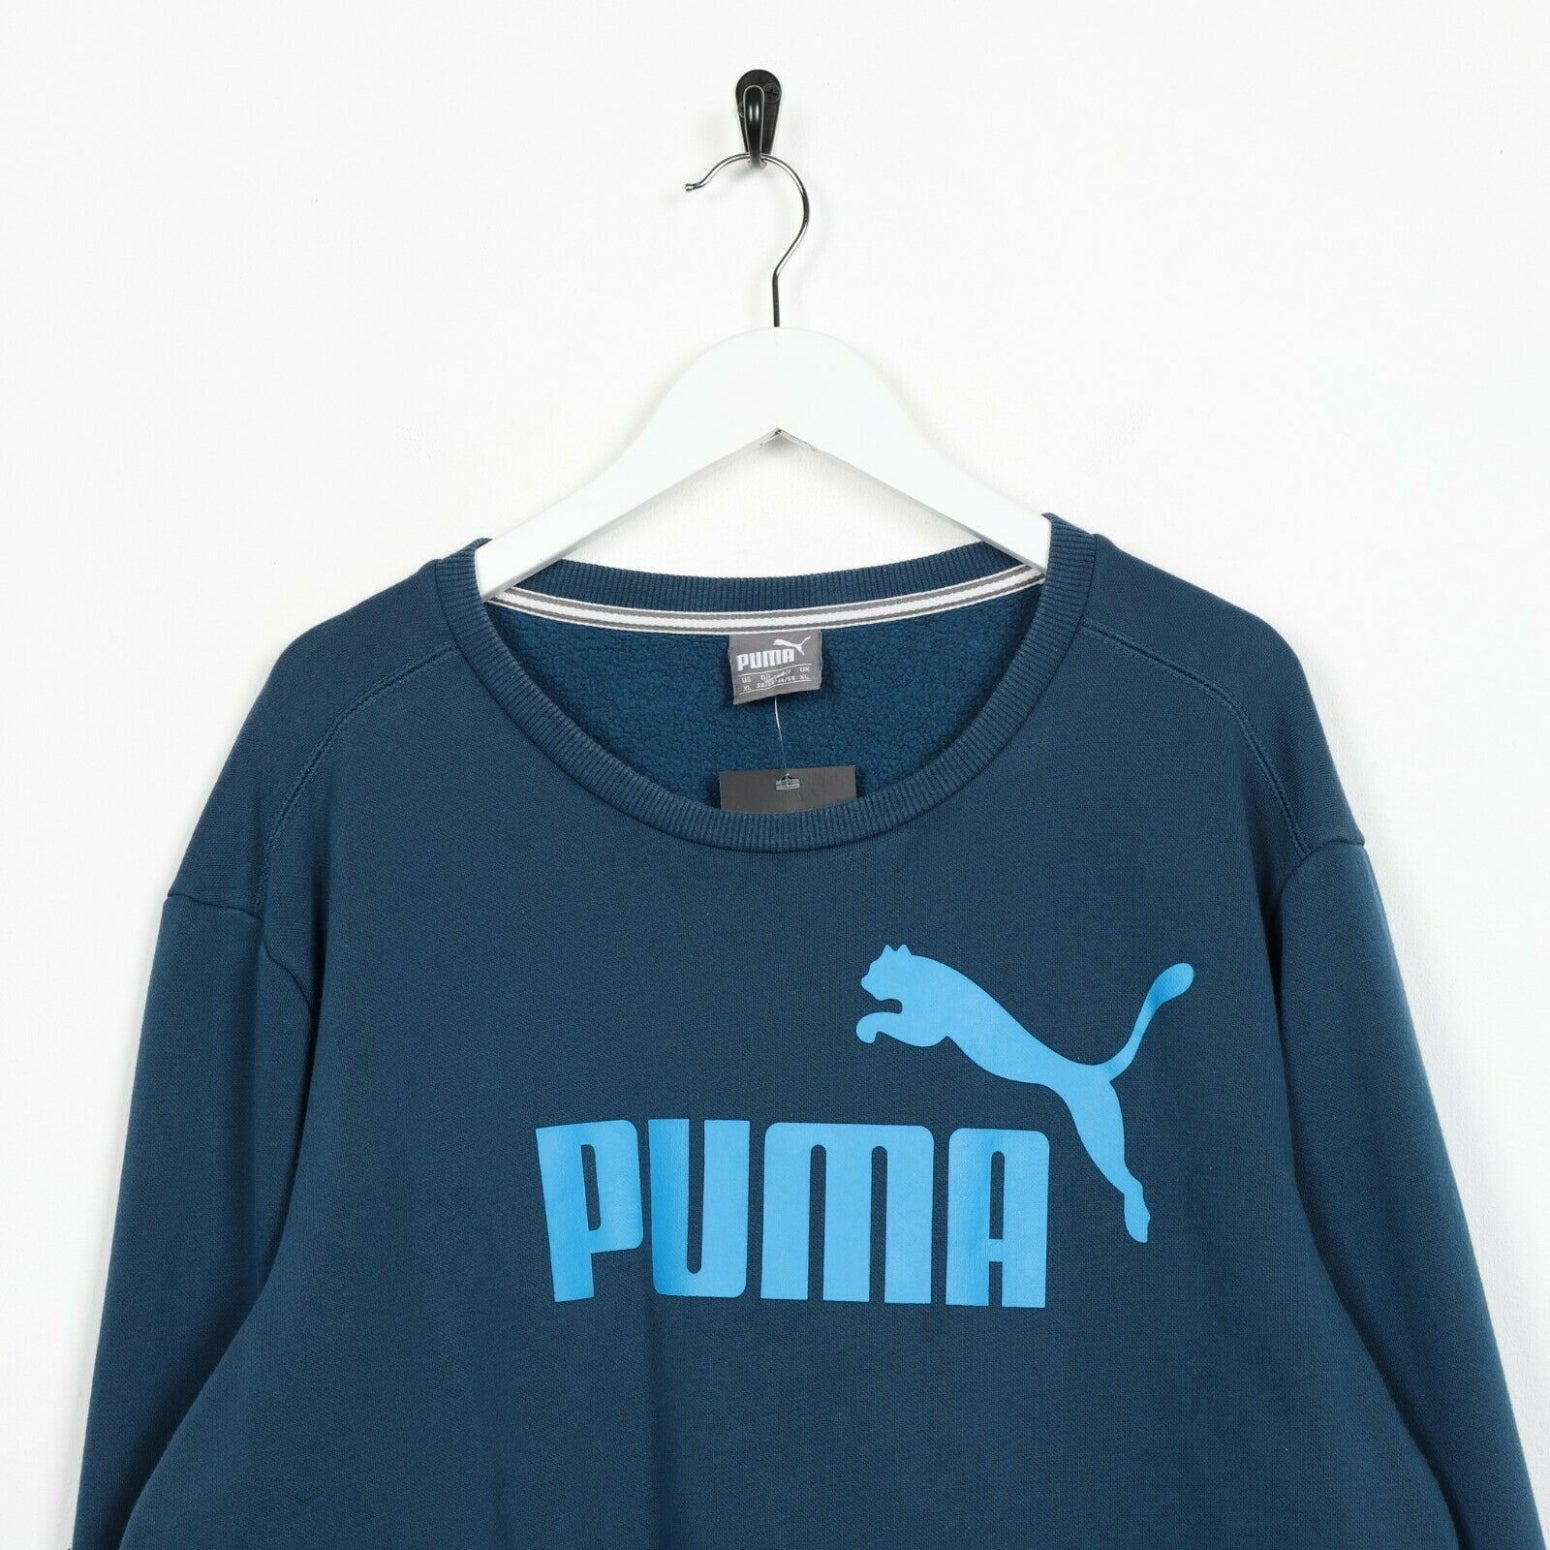 Vintage PUMA Big Logo Sweatshirt Jumper Blue | XL